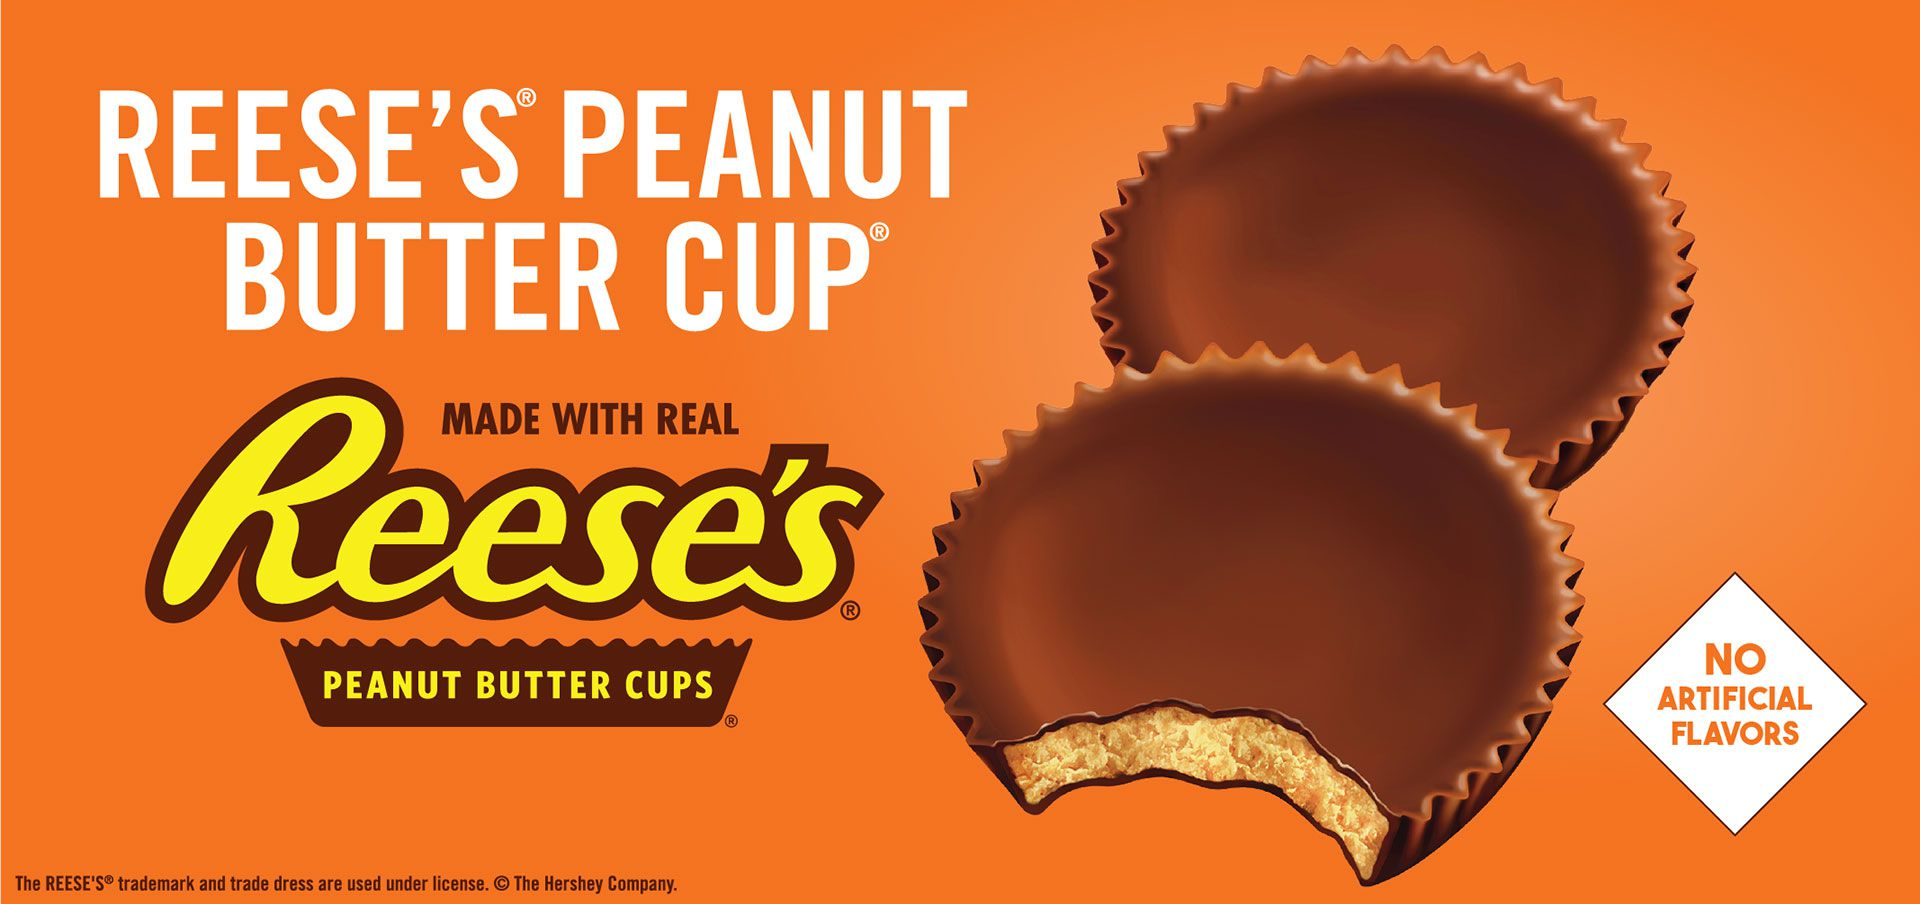 reese's® peanut butter cup® label image